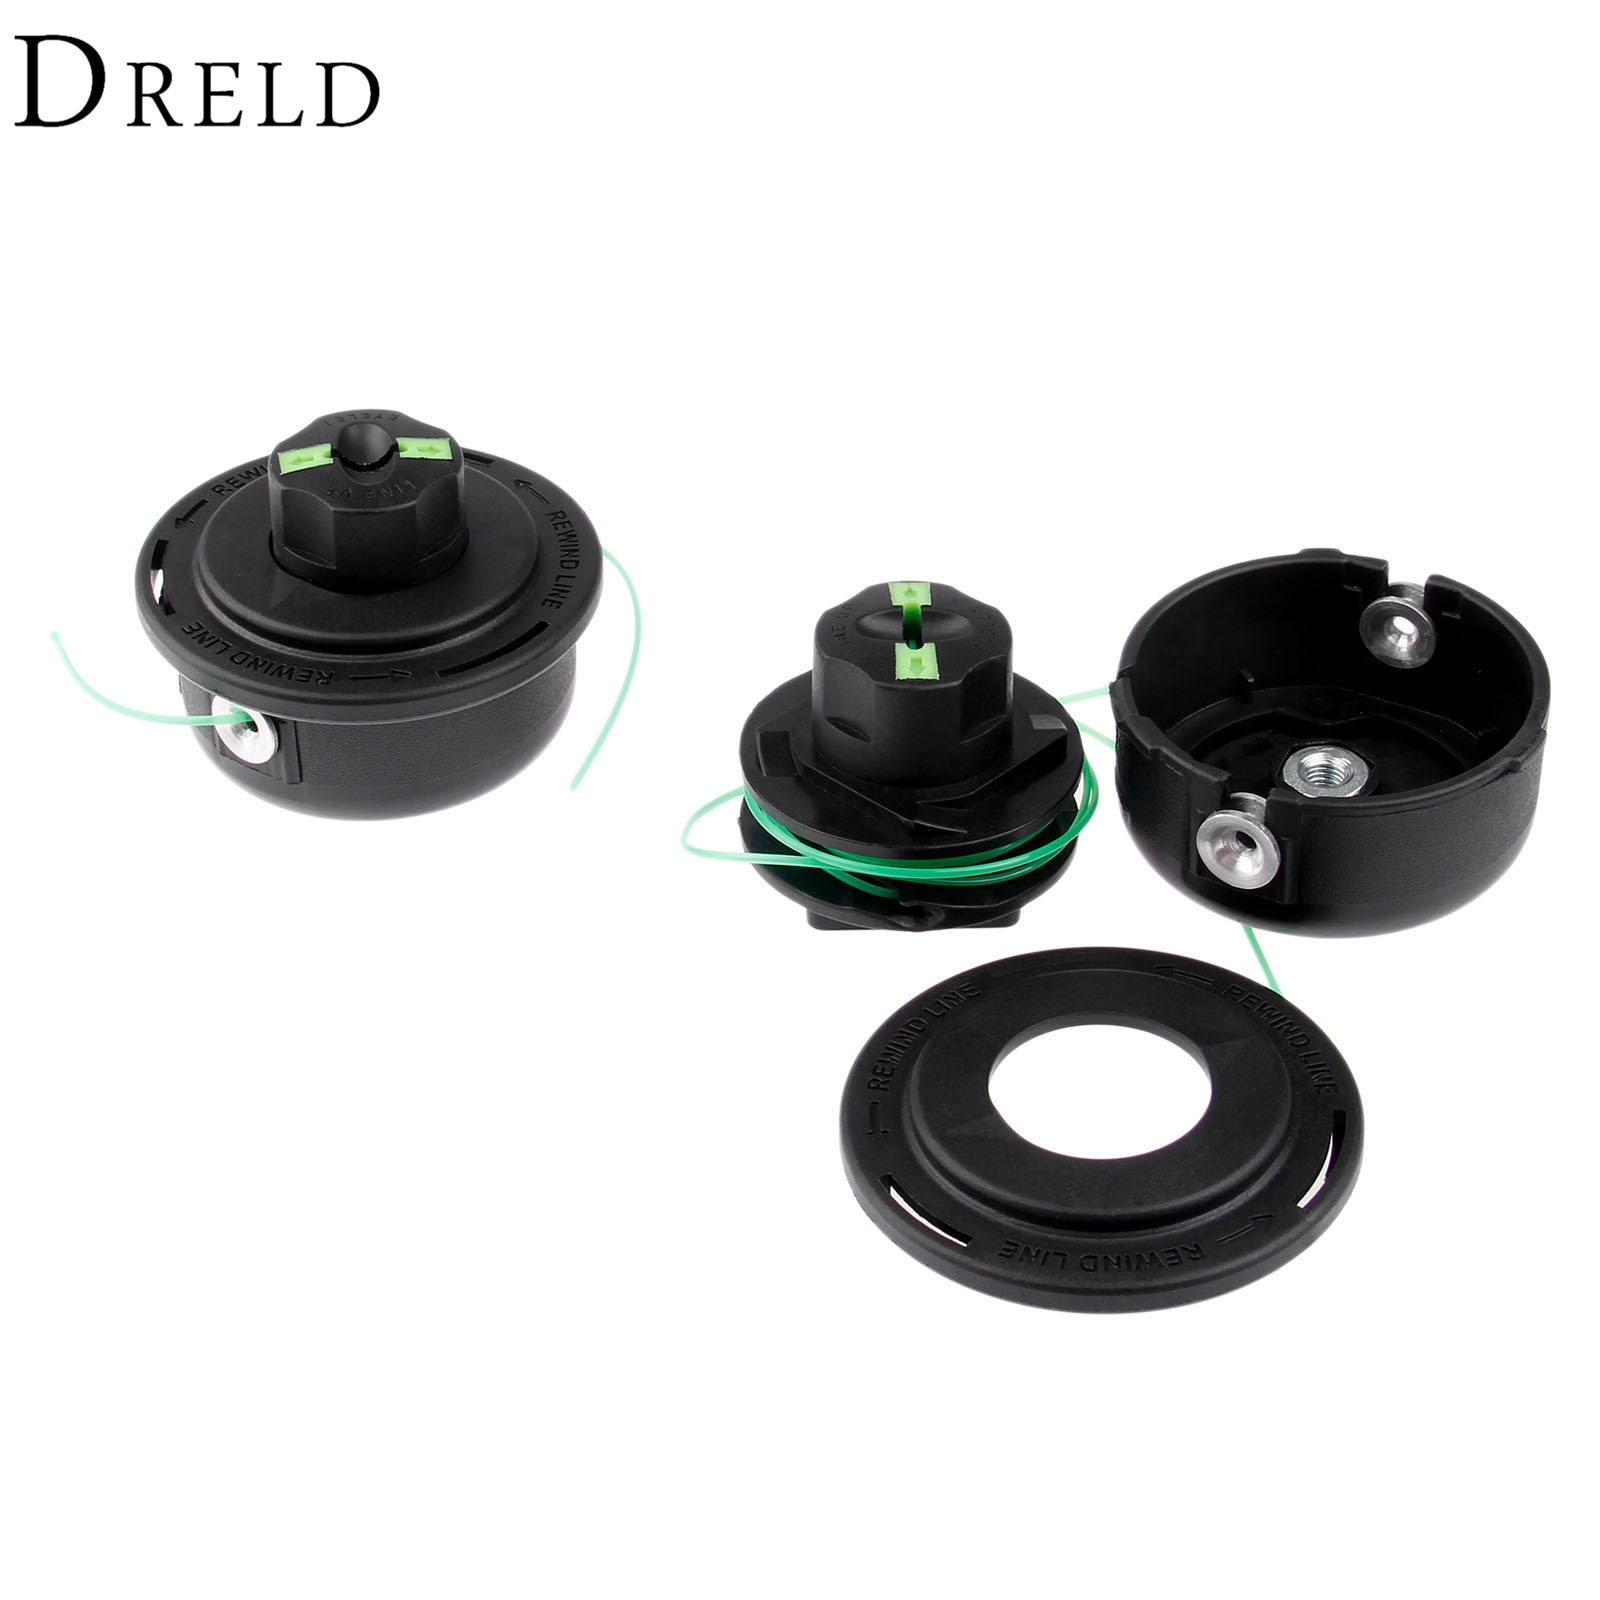 DRELD Electrical Nylon Grass Trimmer Head Adaptor M8*1.25 Double Trimmer Line Bump and Go For Garden Use Trimmer Head Tool Parts цена